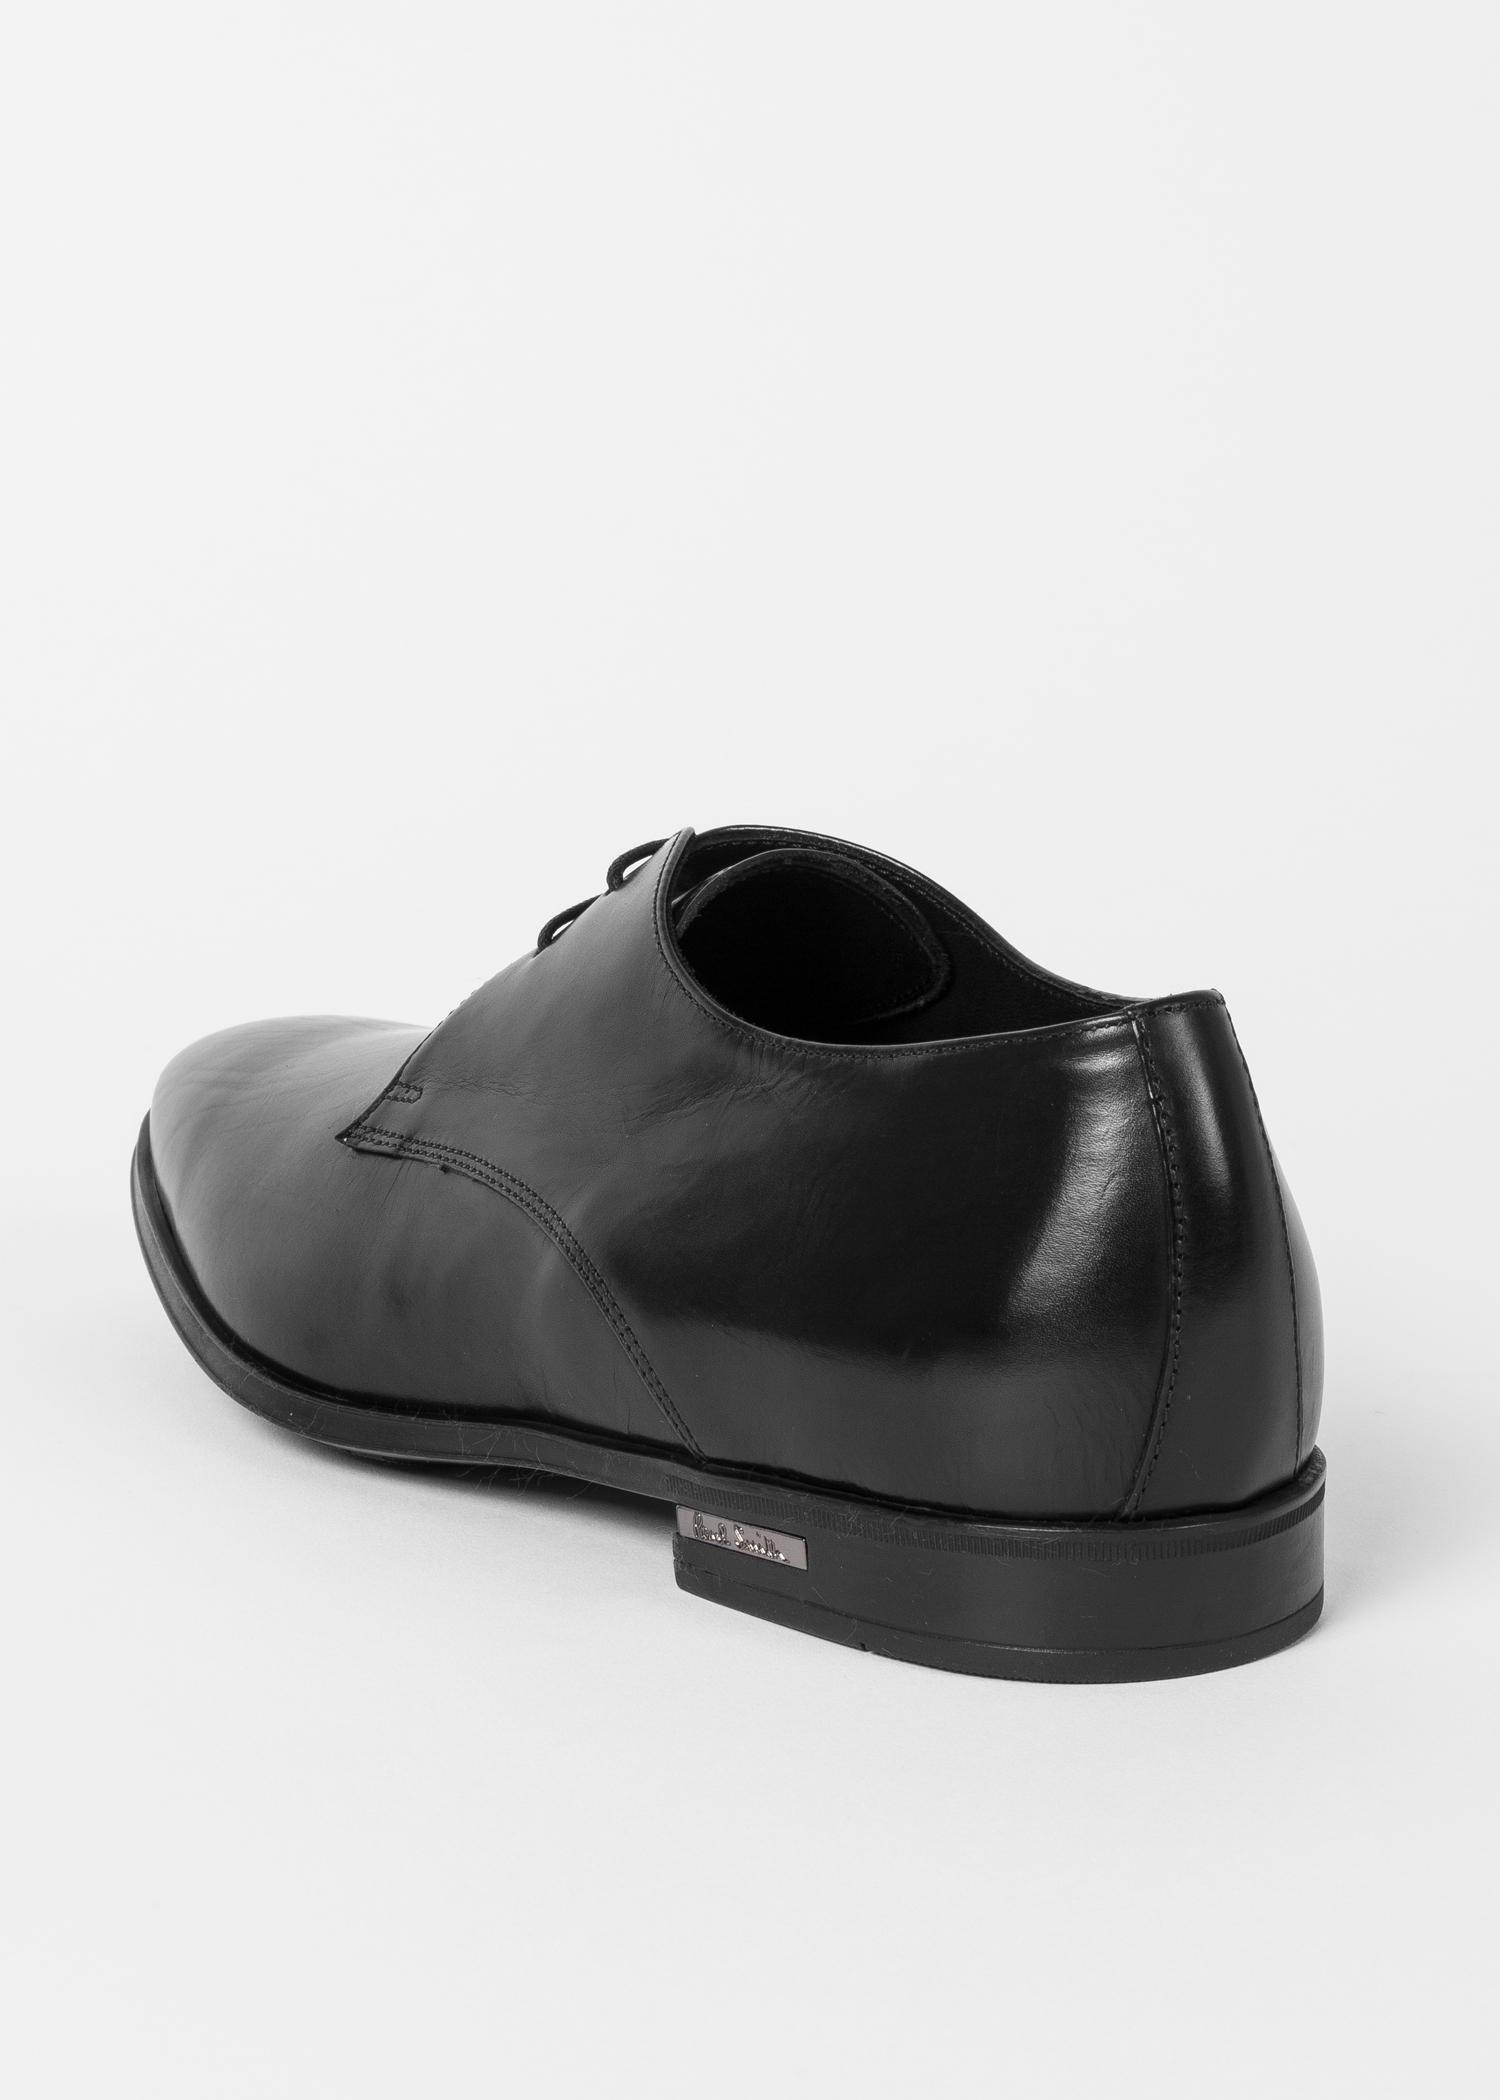 Paul Smith Black Leather 'Coney' Derby Shoes for Men